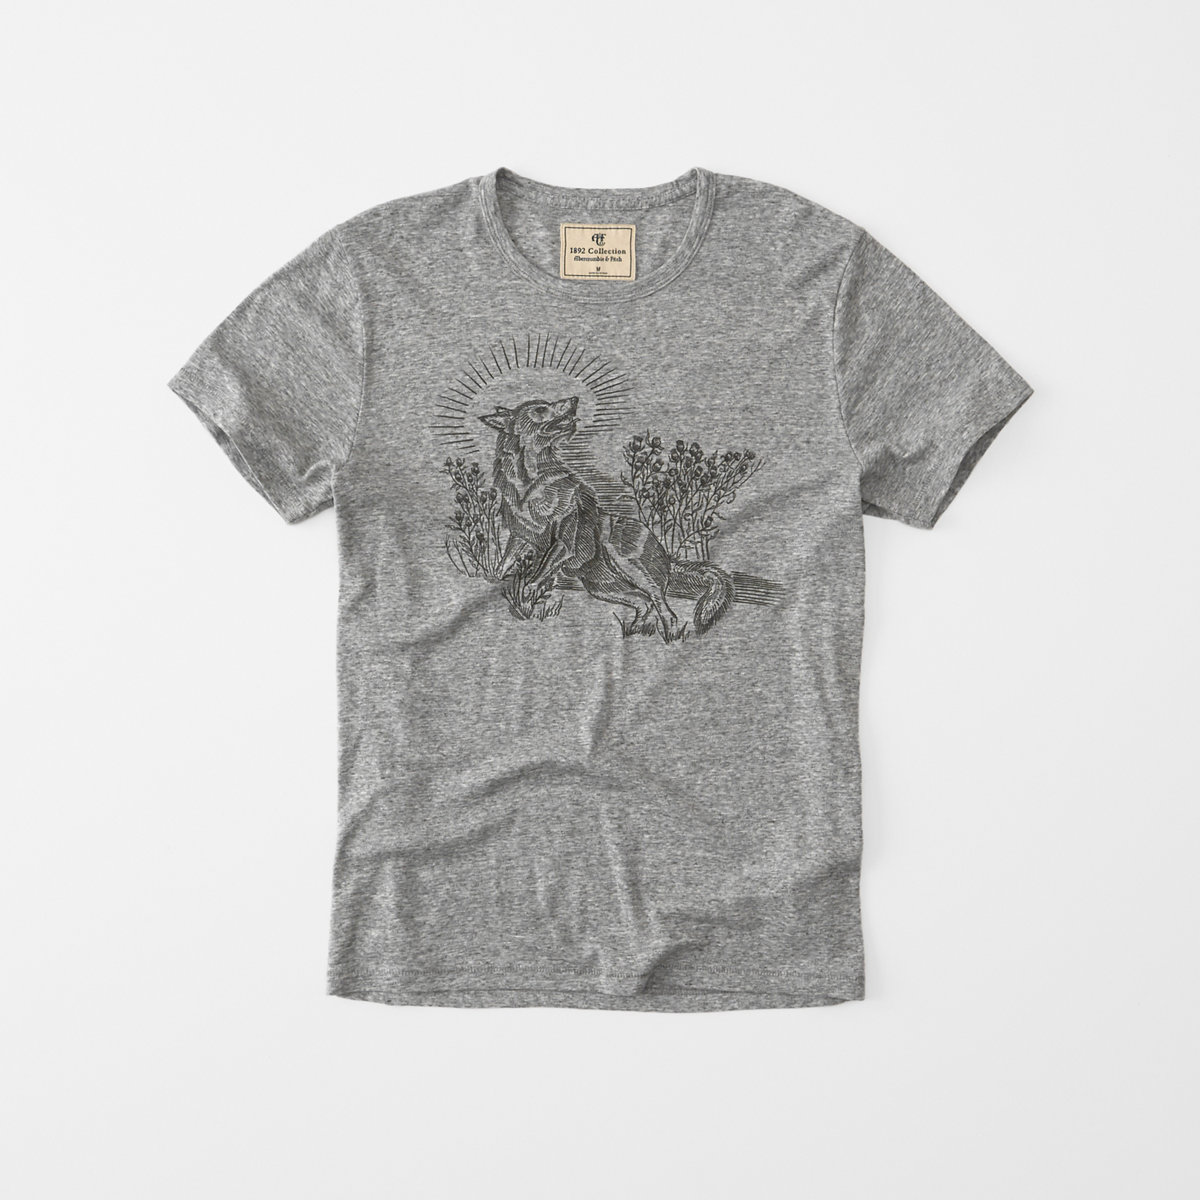 Artist Collaboration Tee